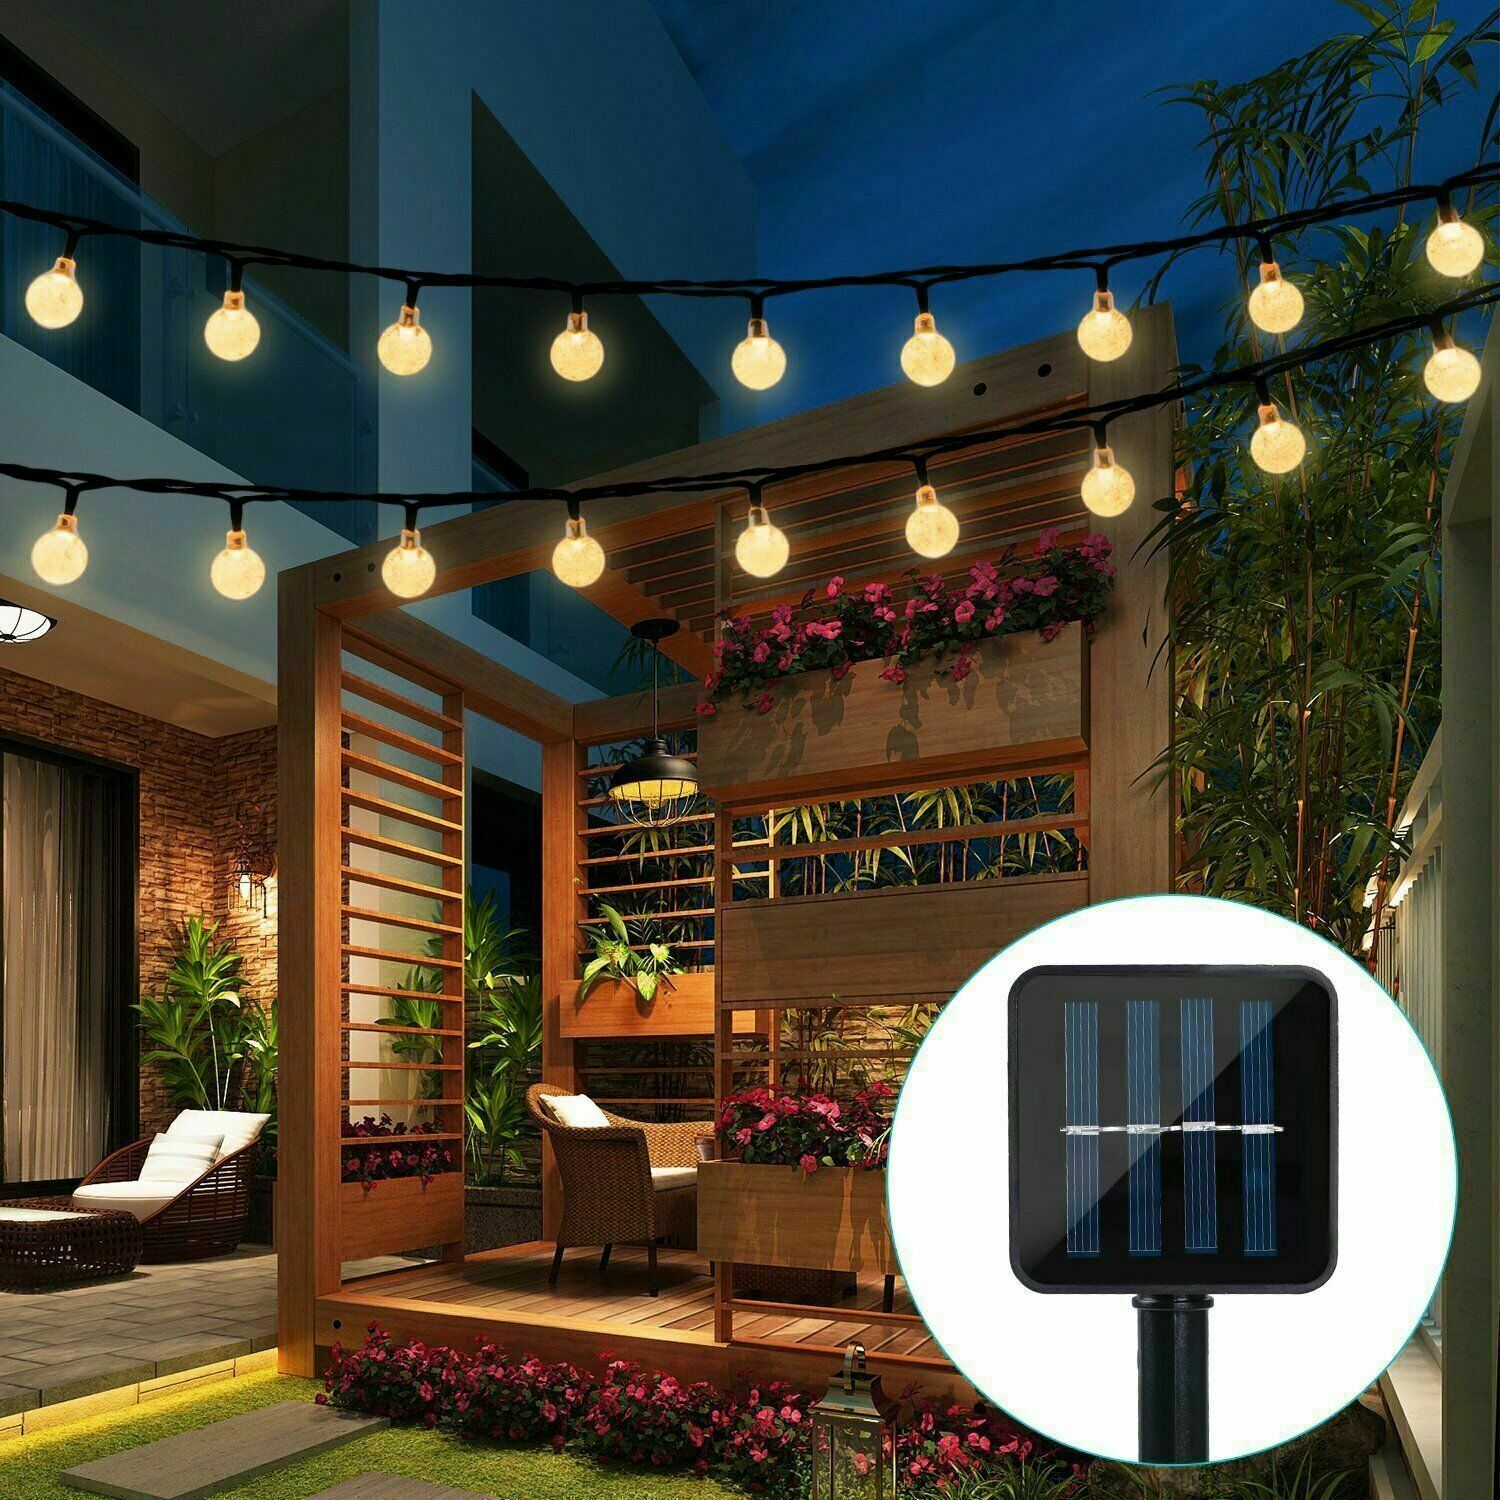 Solar Powered 30 LED String Light Garden Path Yard Decor Lamp Outdoor Waterproof Home & Garden